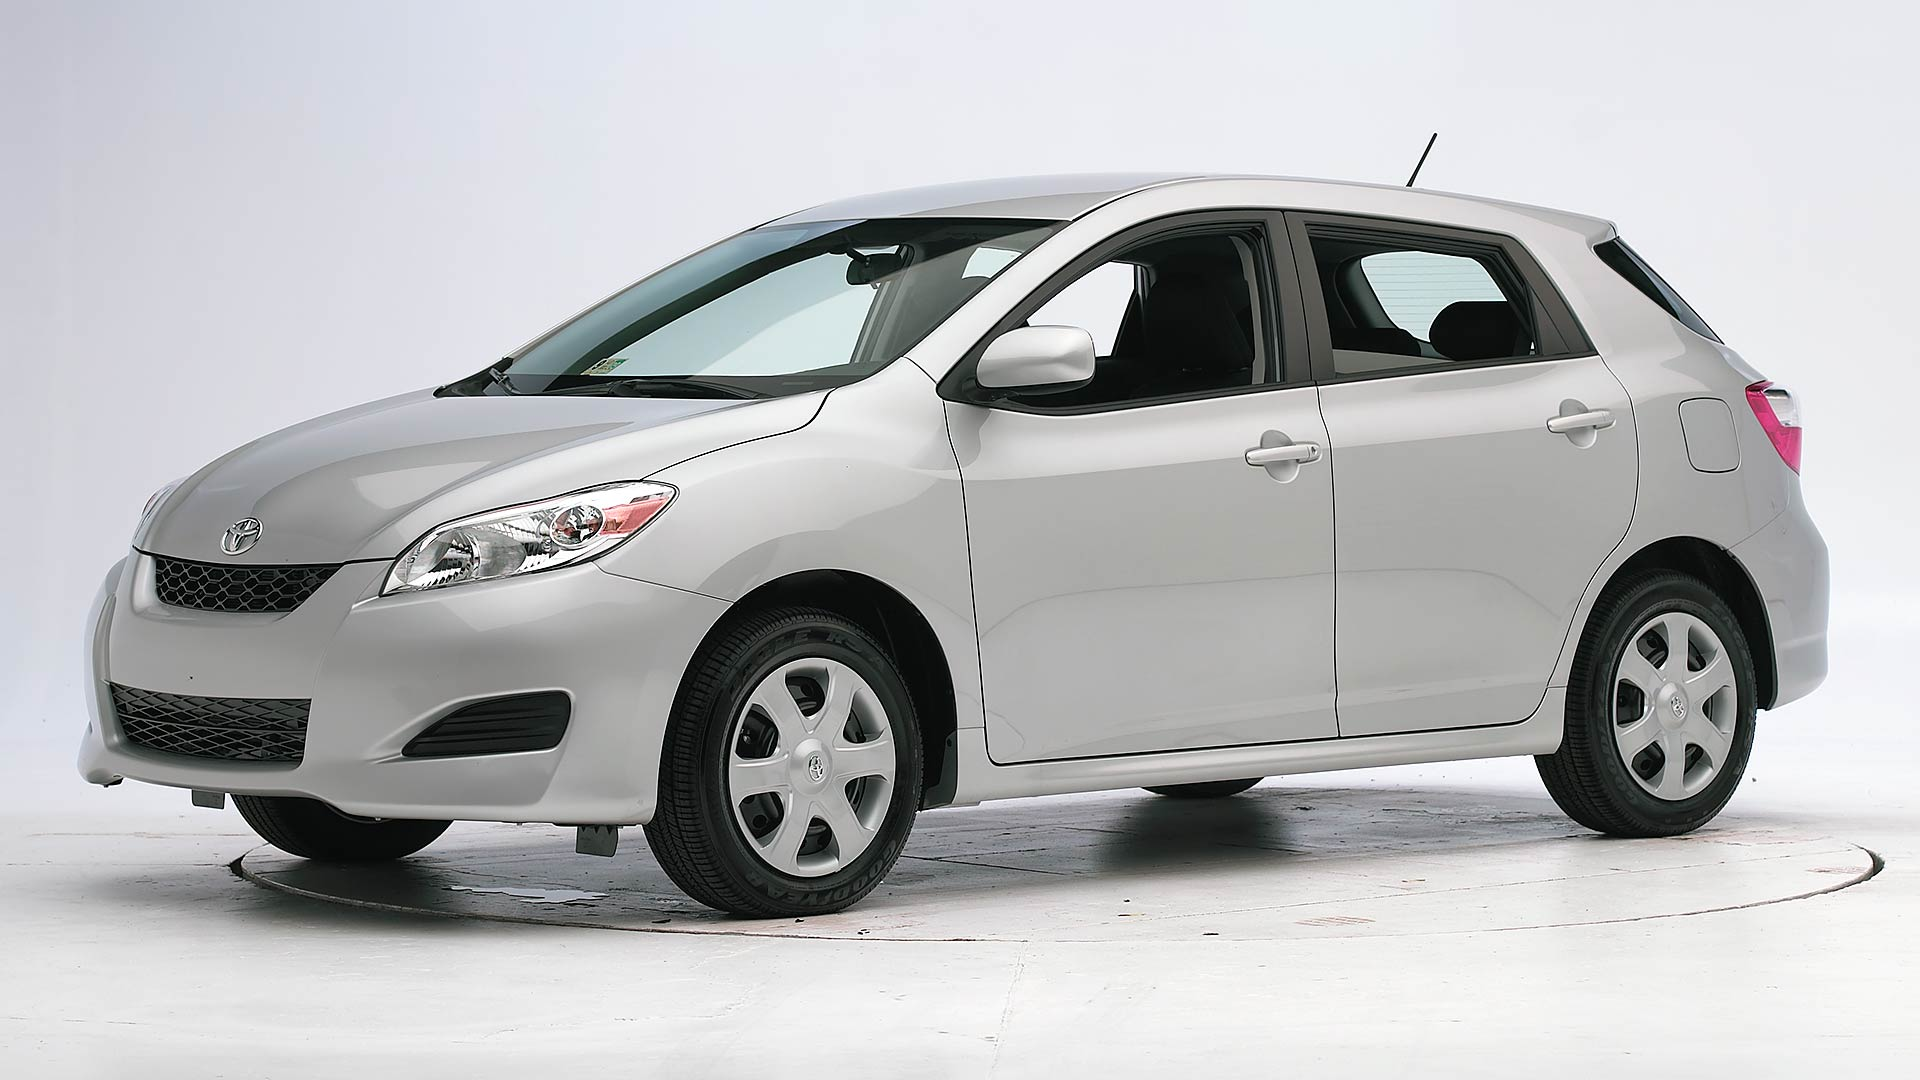 2012 Toyota Matrix 4-door wagon